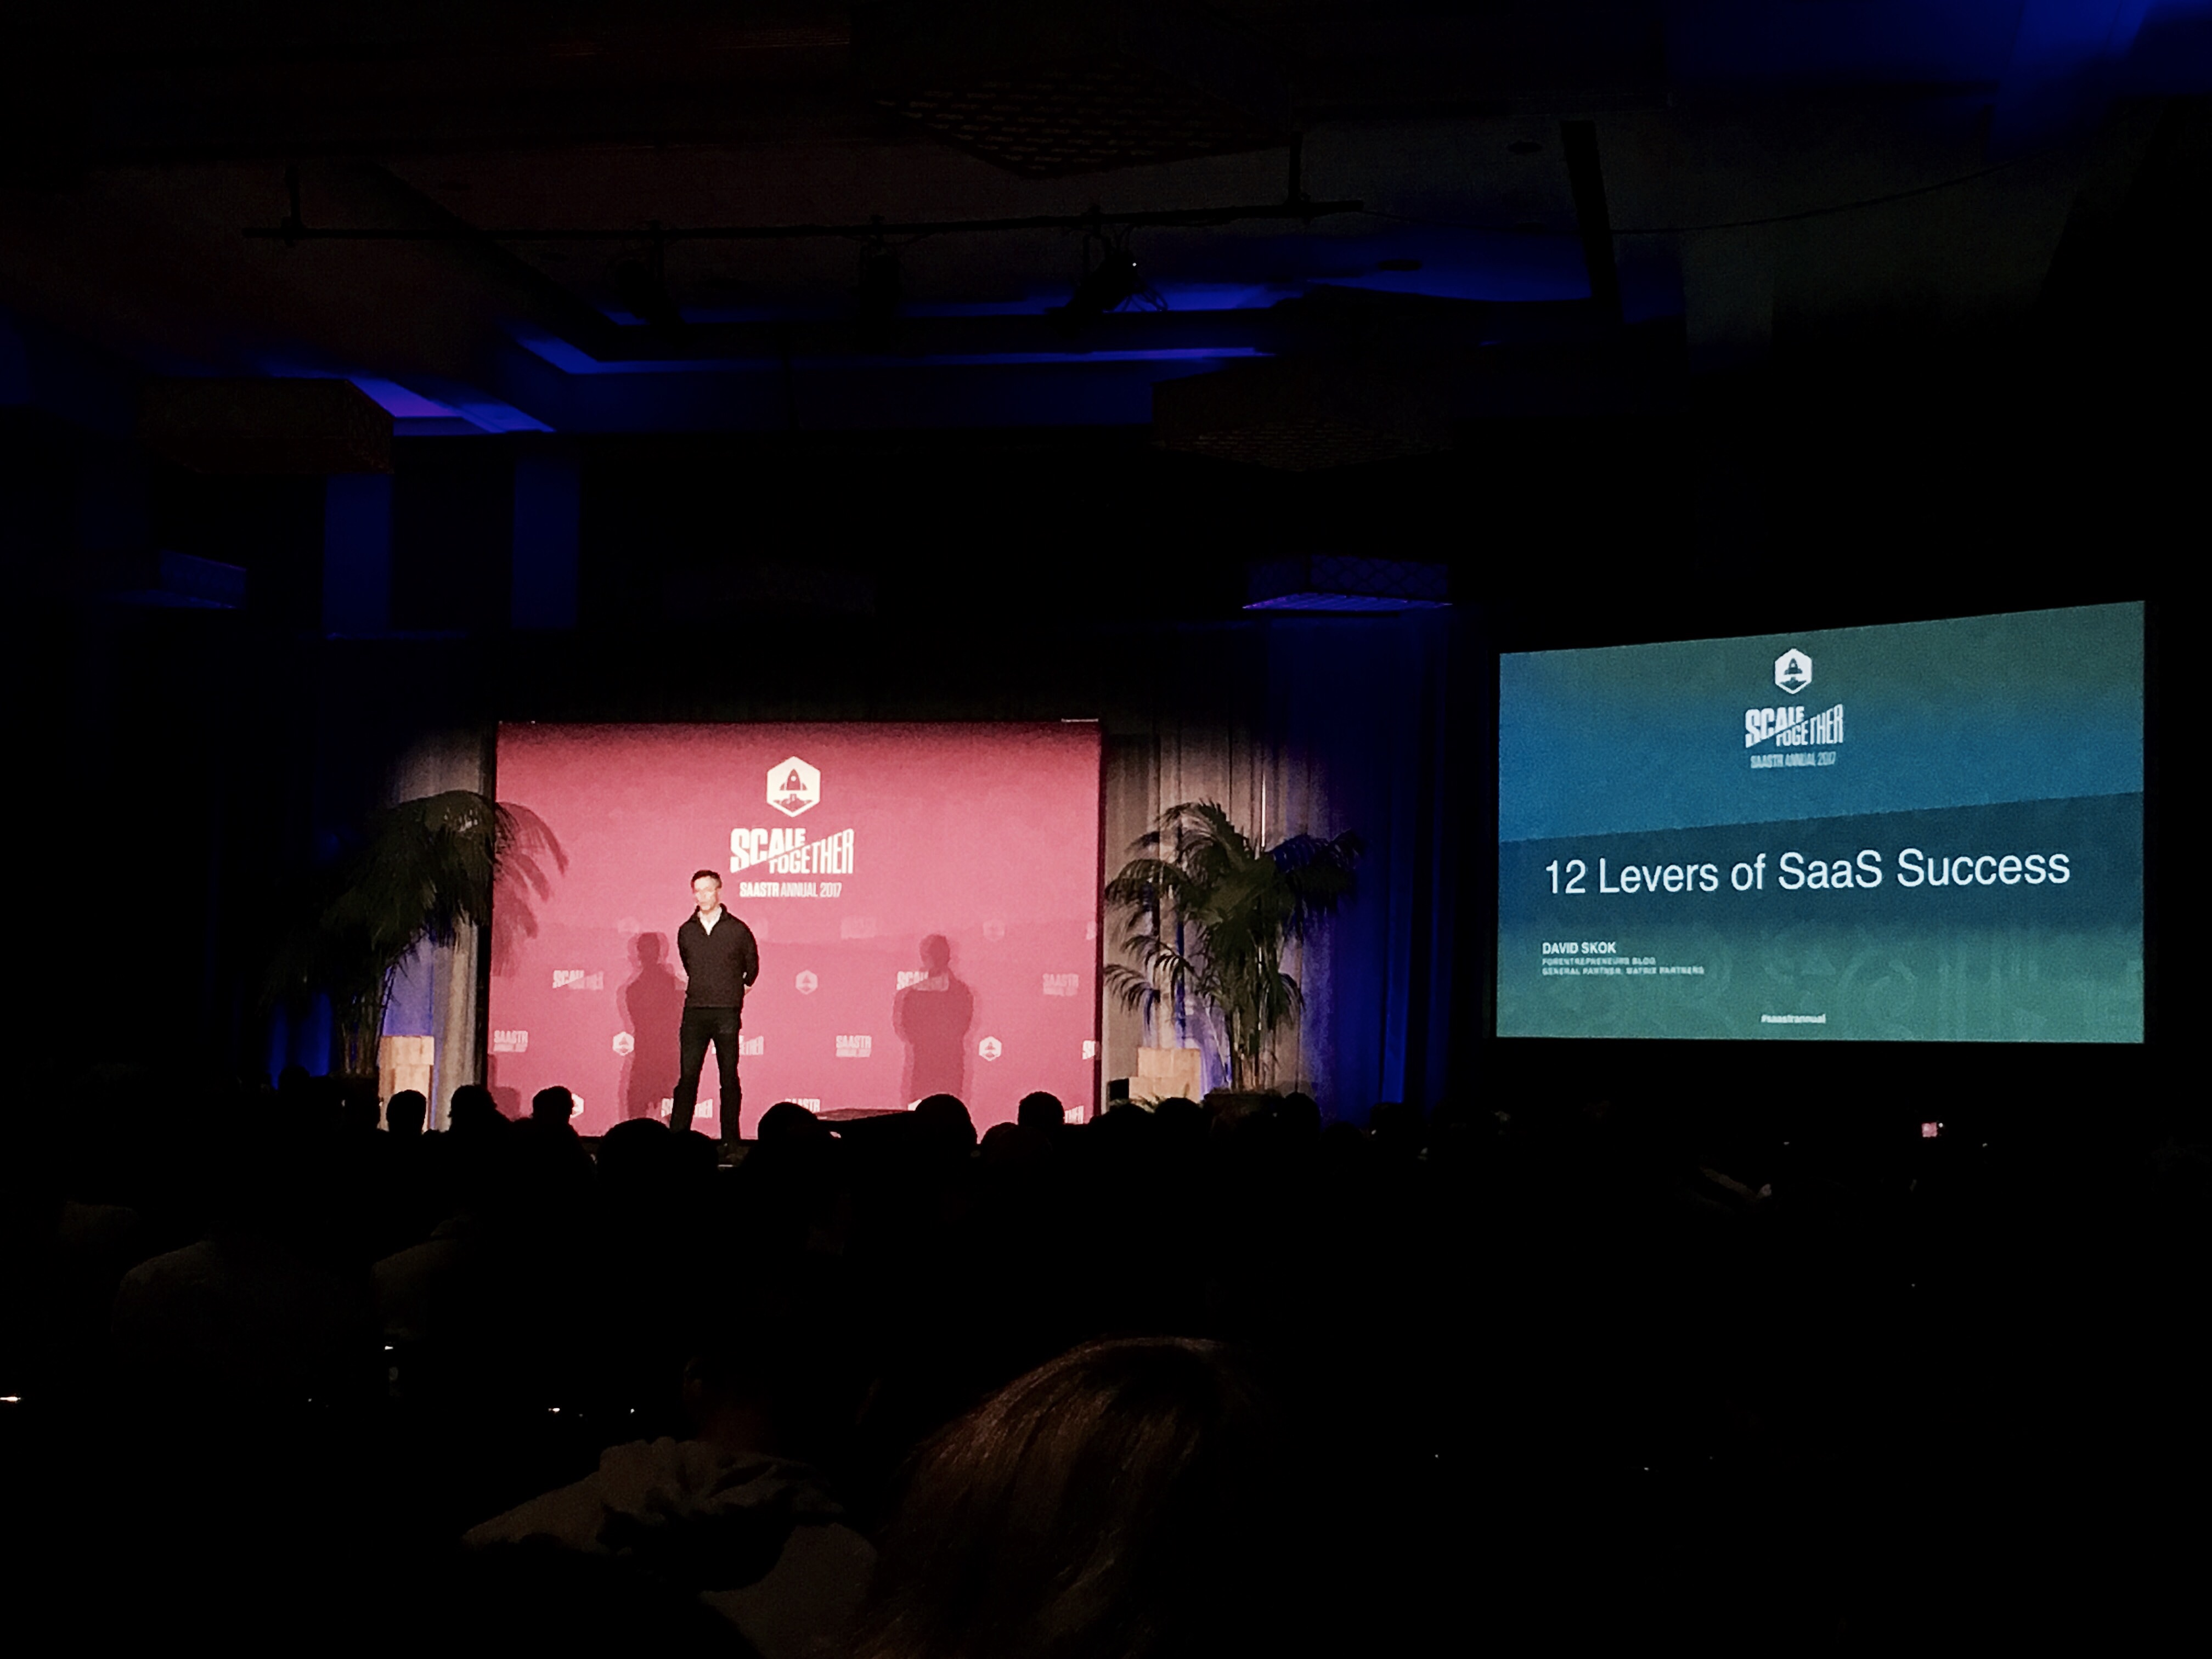 My Takeaways from SaaStr Annual 2017 Conference (Day 2) - Paubox